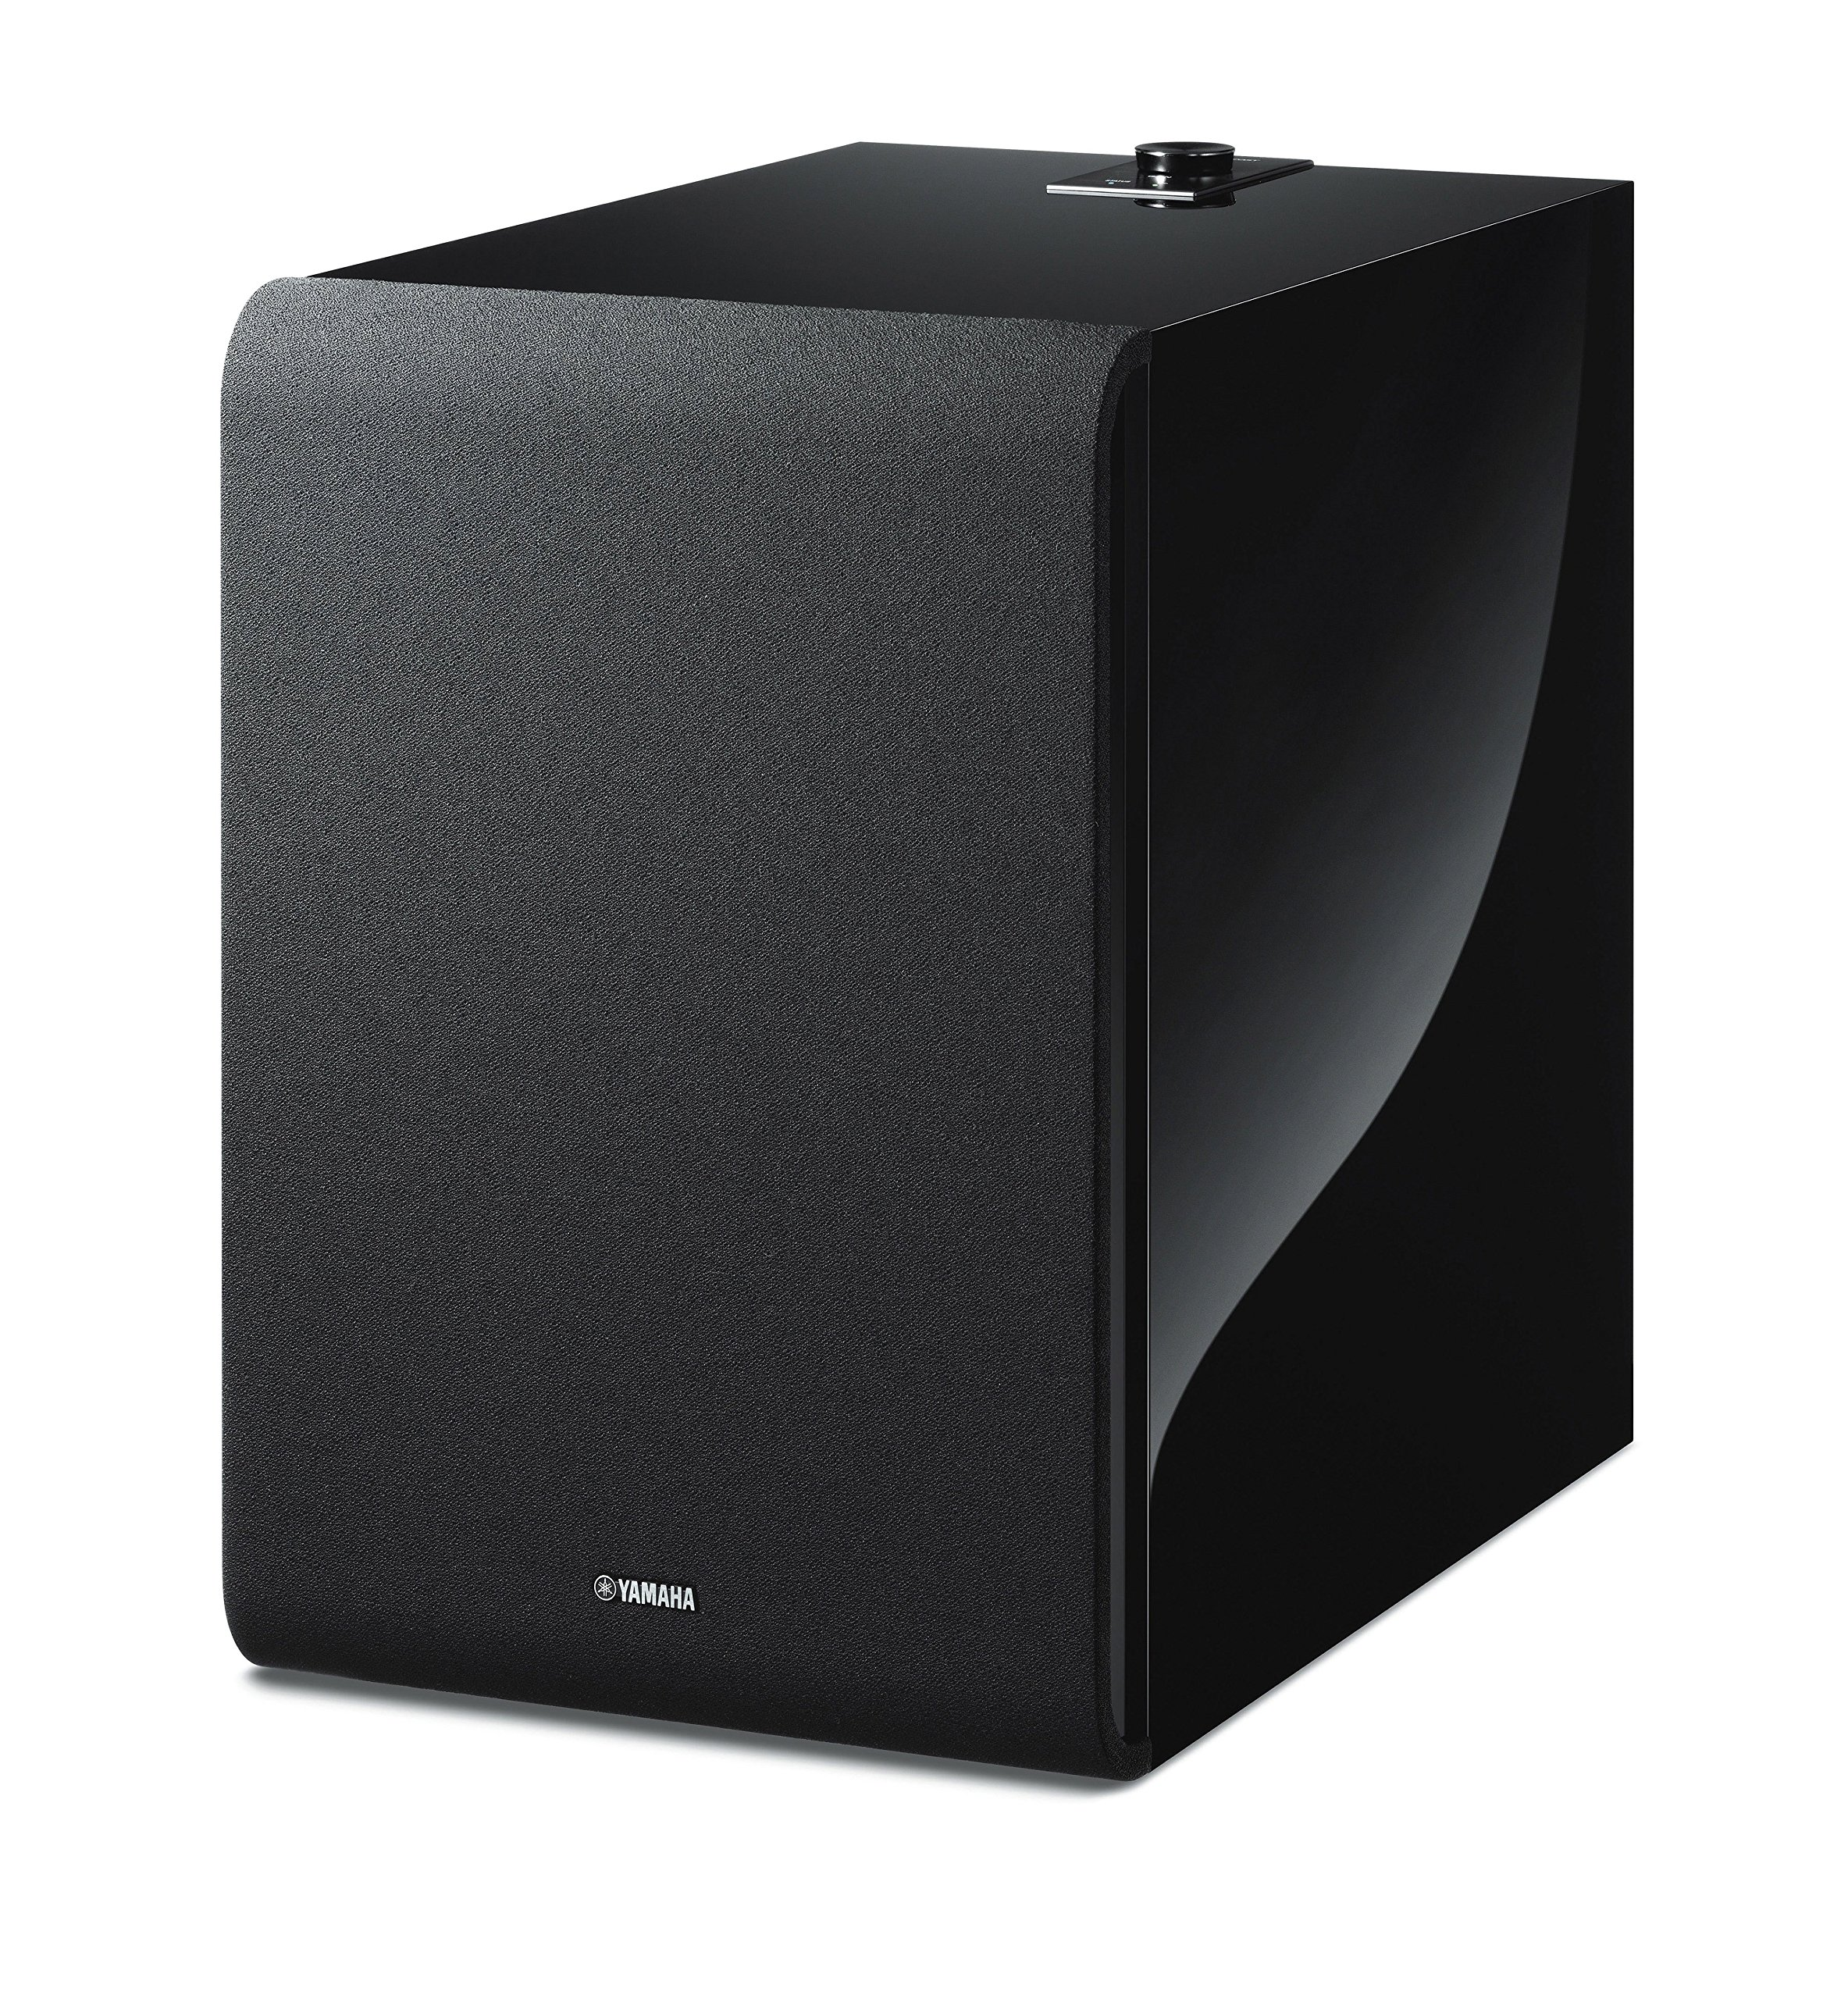 Yamaha MusicCast SUB 100 Wireless Subwoofer, Compatible with Alexa - Black by Yamaha